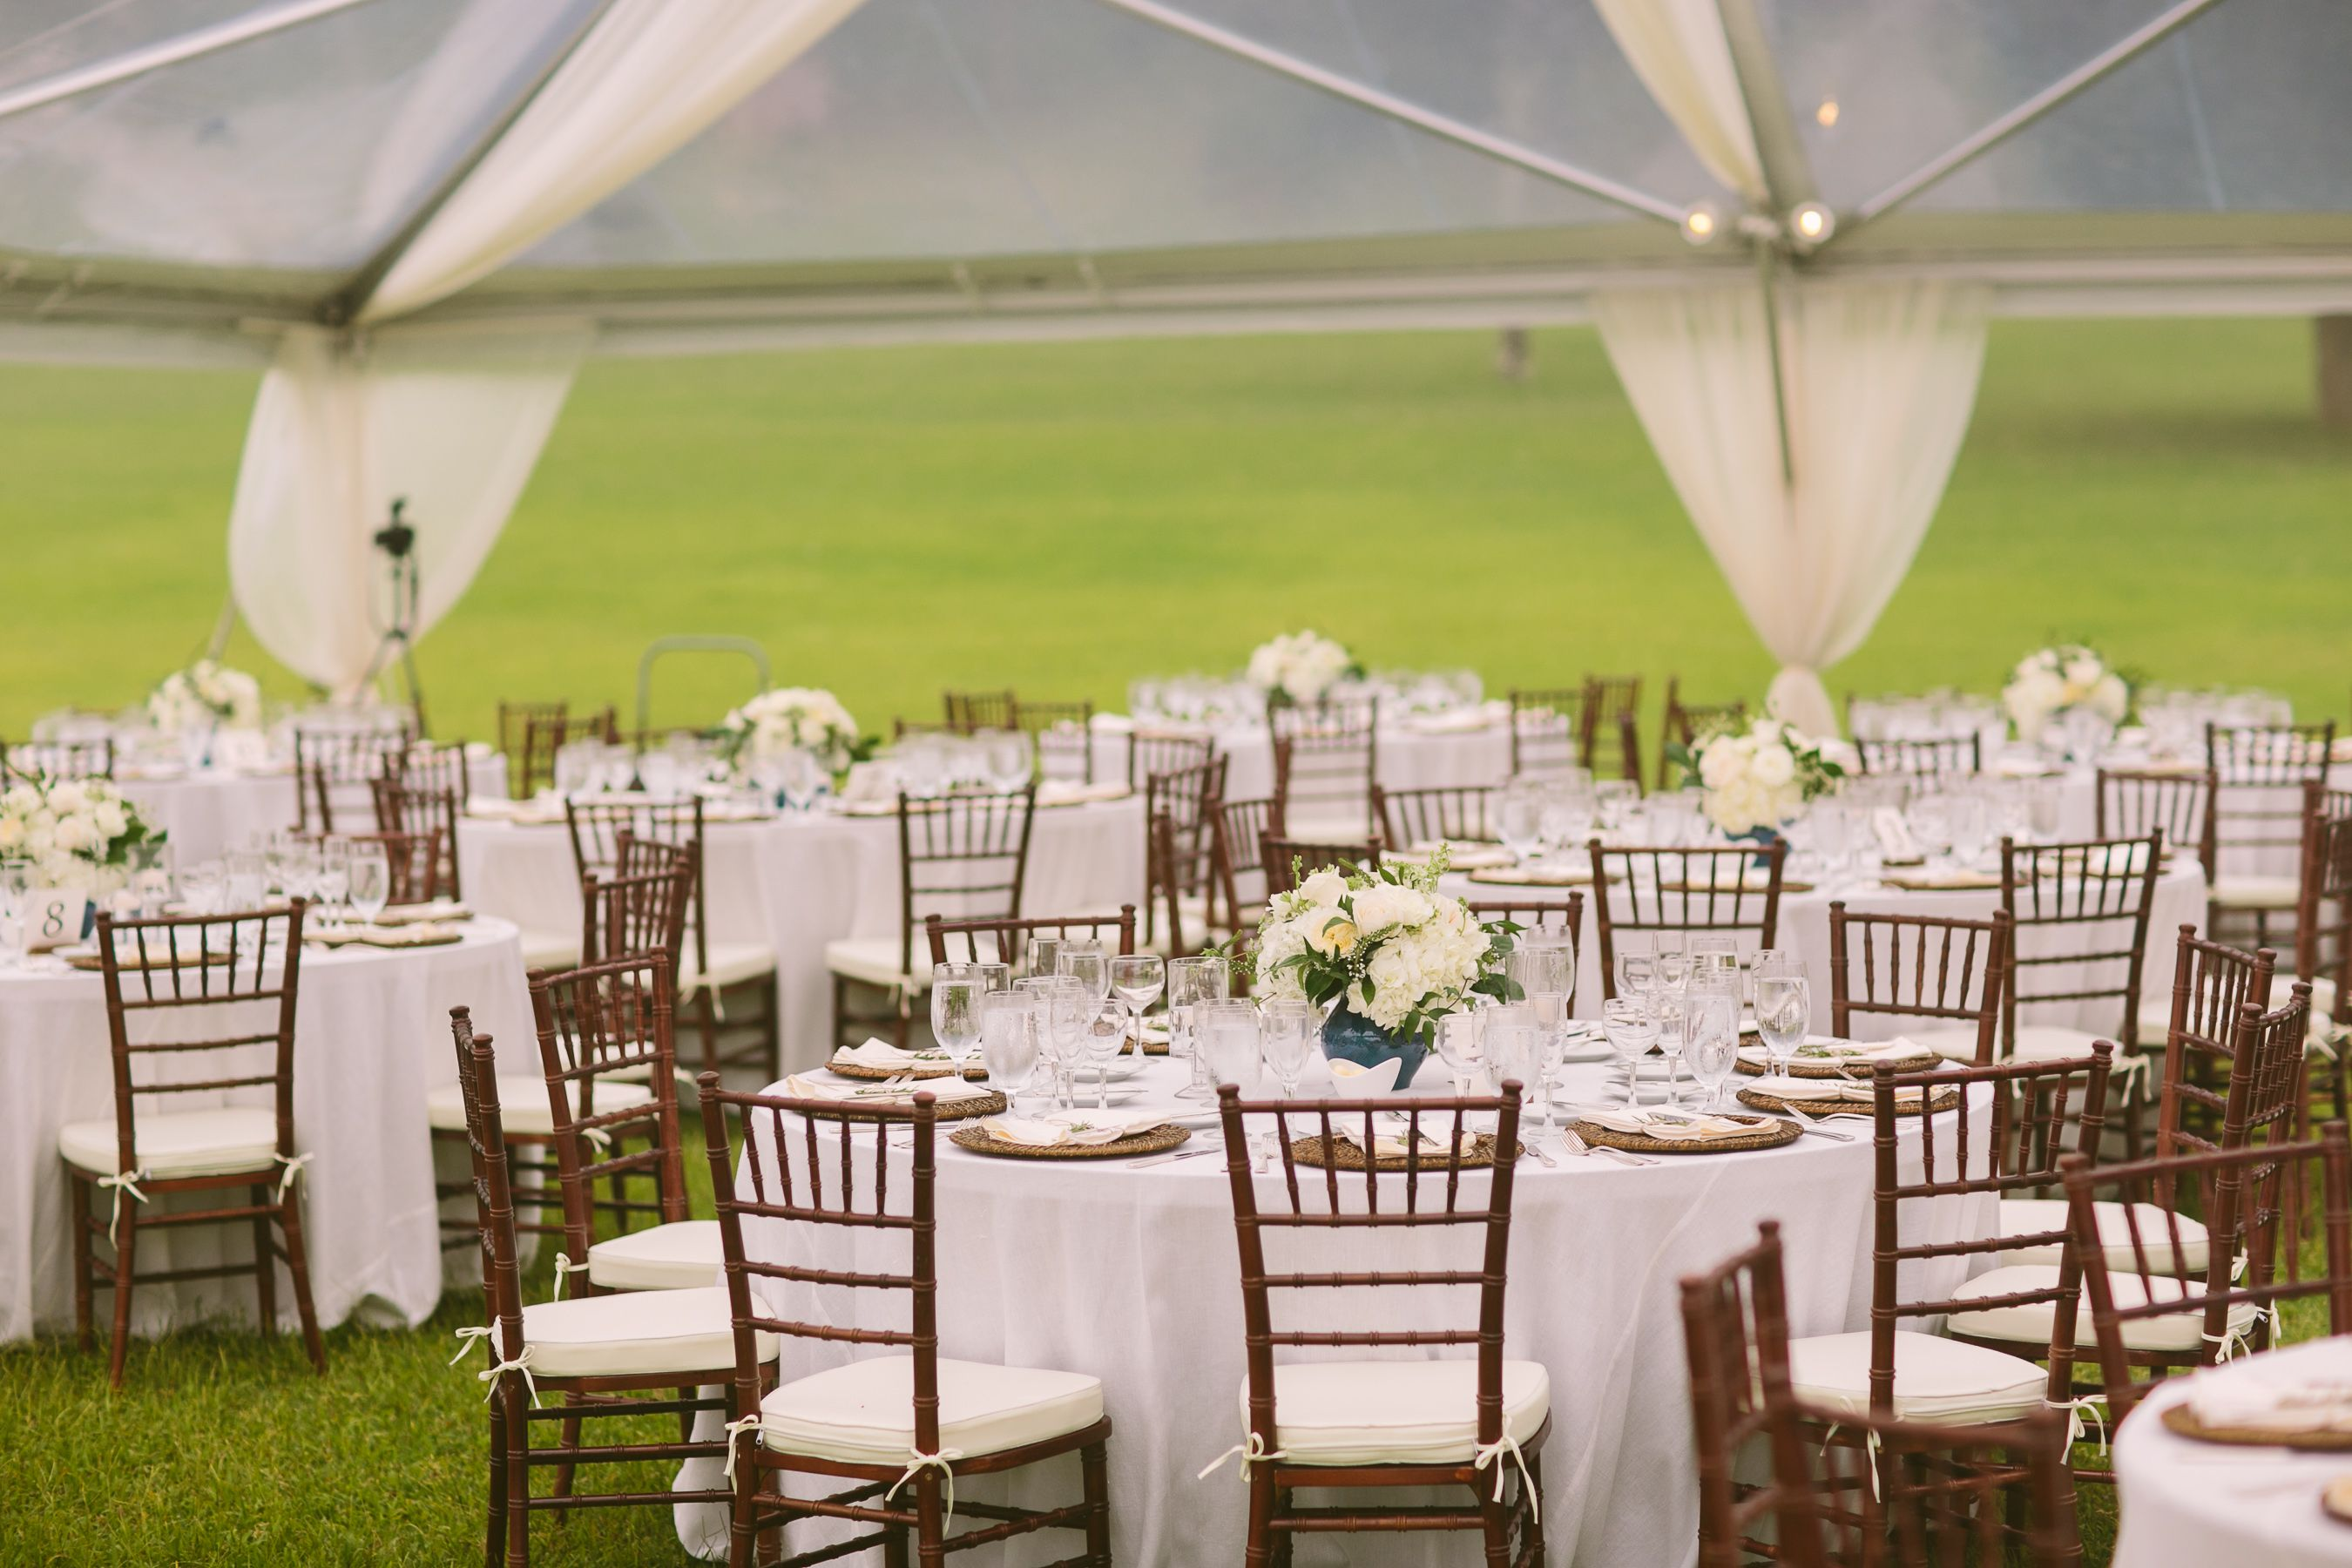 Fruitwood Chiavari Chairs For Reception Chiavari Chairs Wedding Chair Side Table Chiavari Chairs